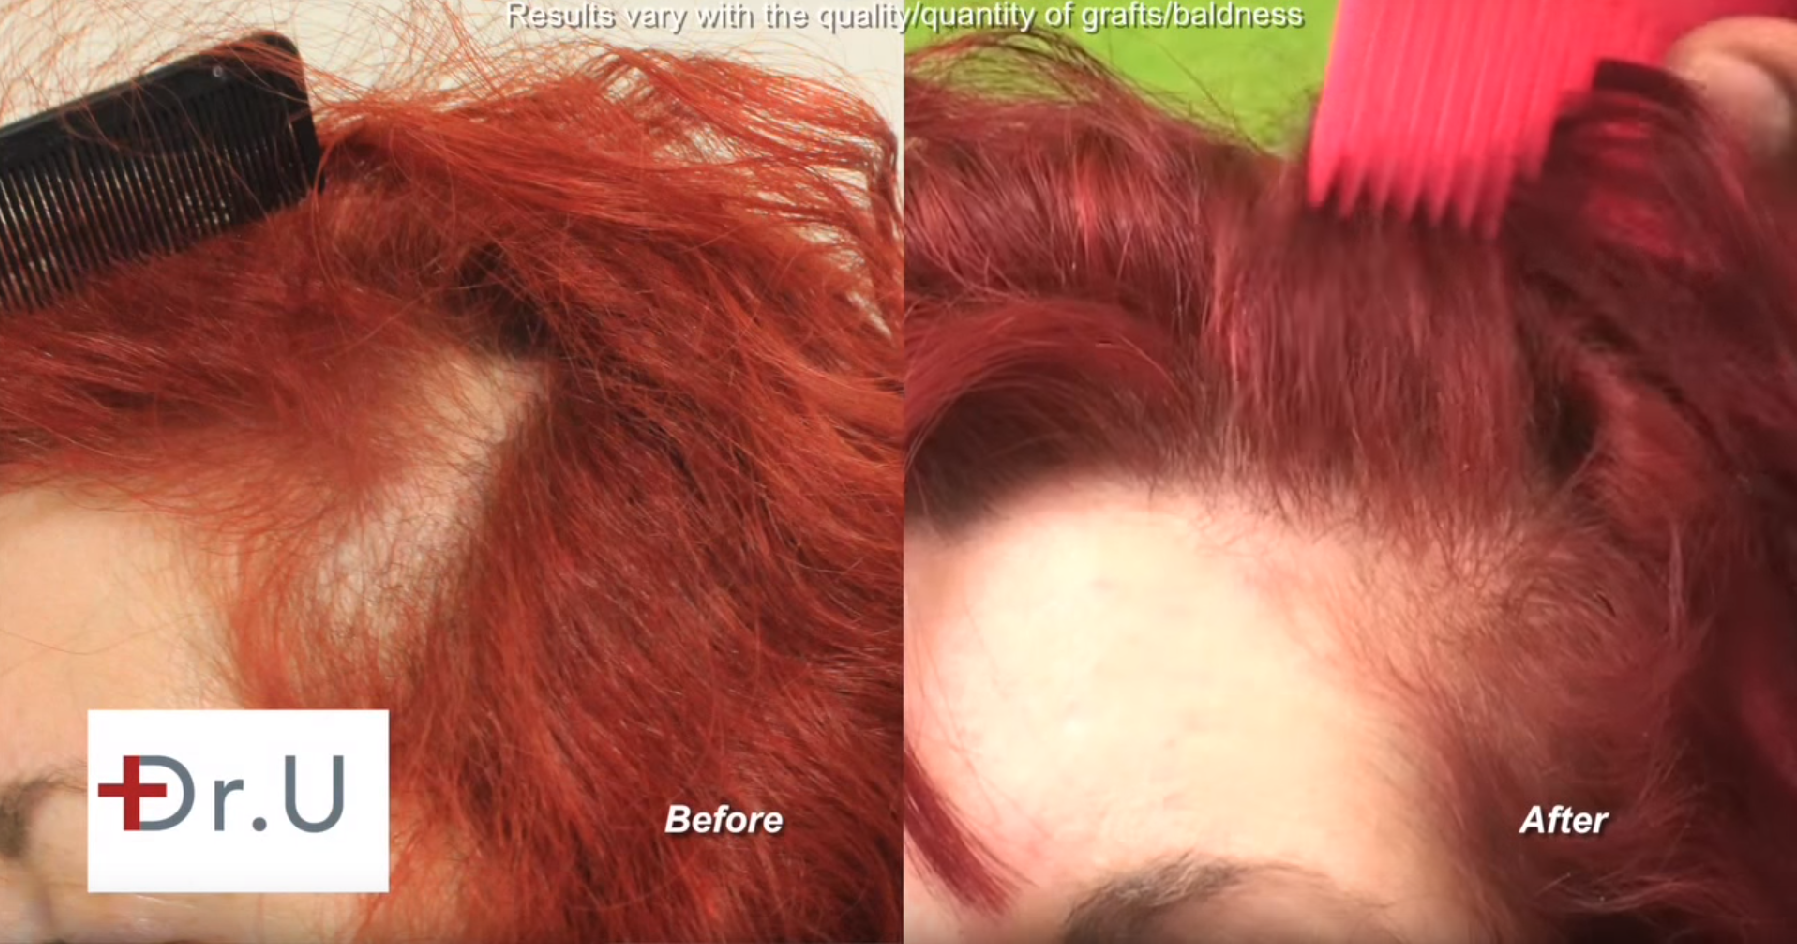 Dr. U restored the patient's hairline with 200 grafts to her temple area using his patented Dr.UGraft system.